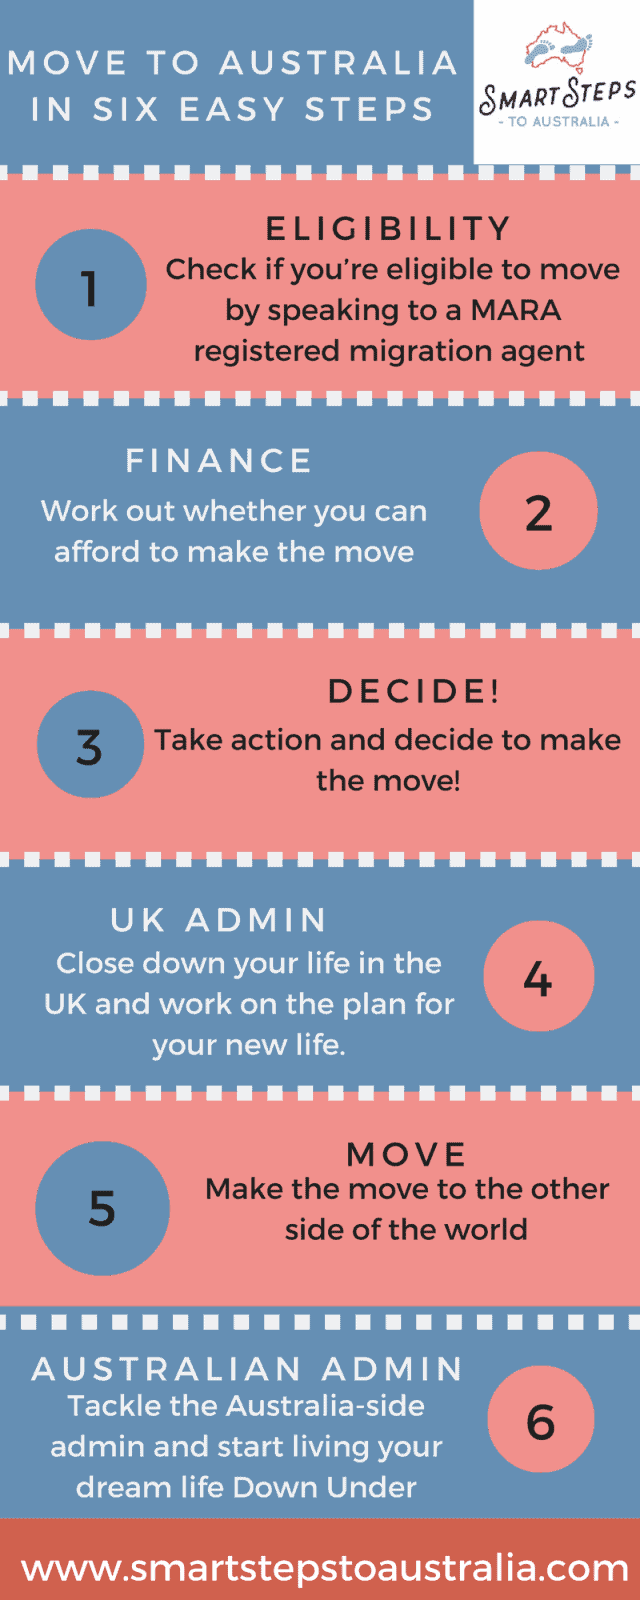 Infographic showing six easy steps to emigrate to Australia